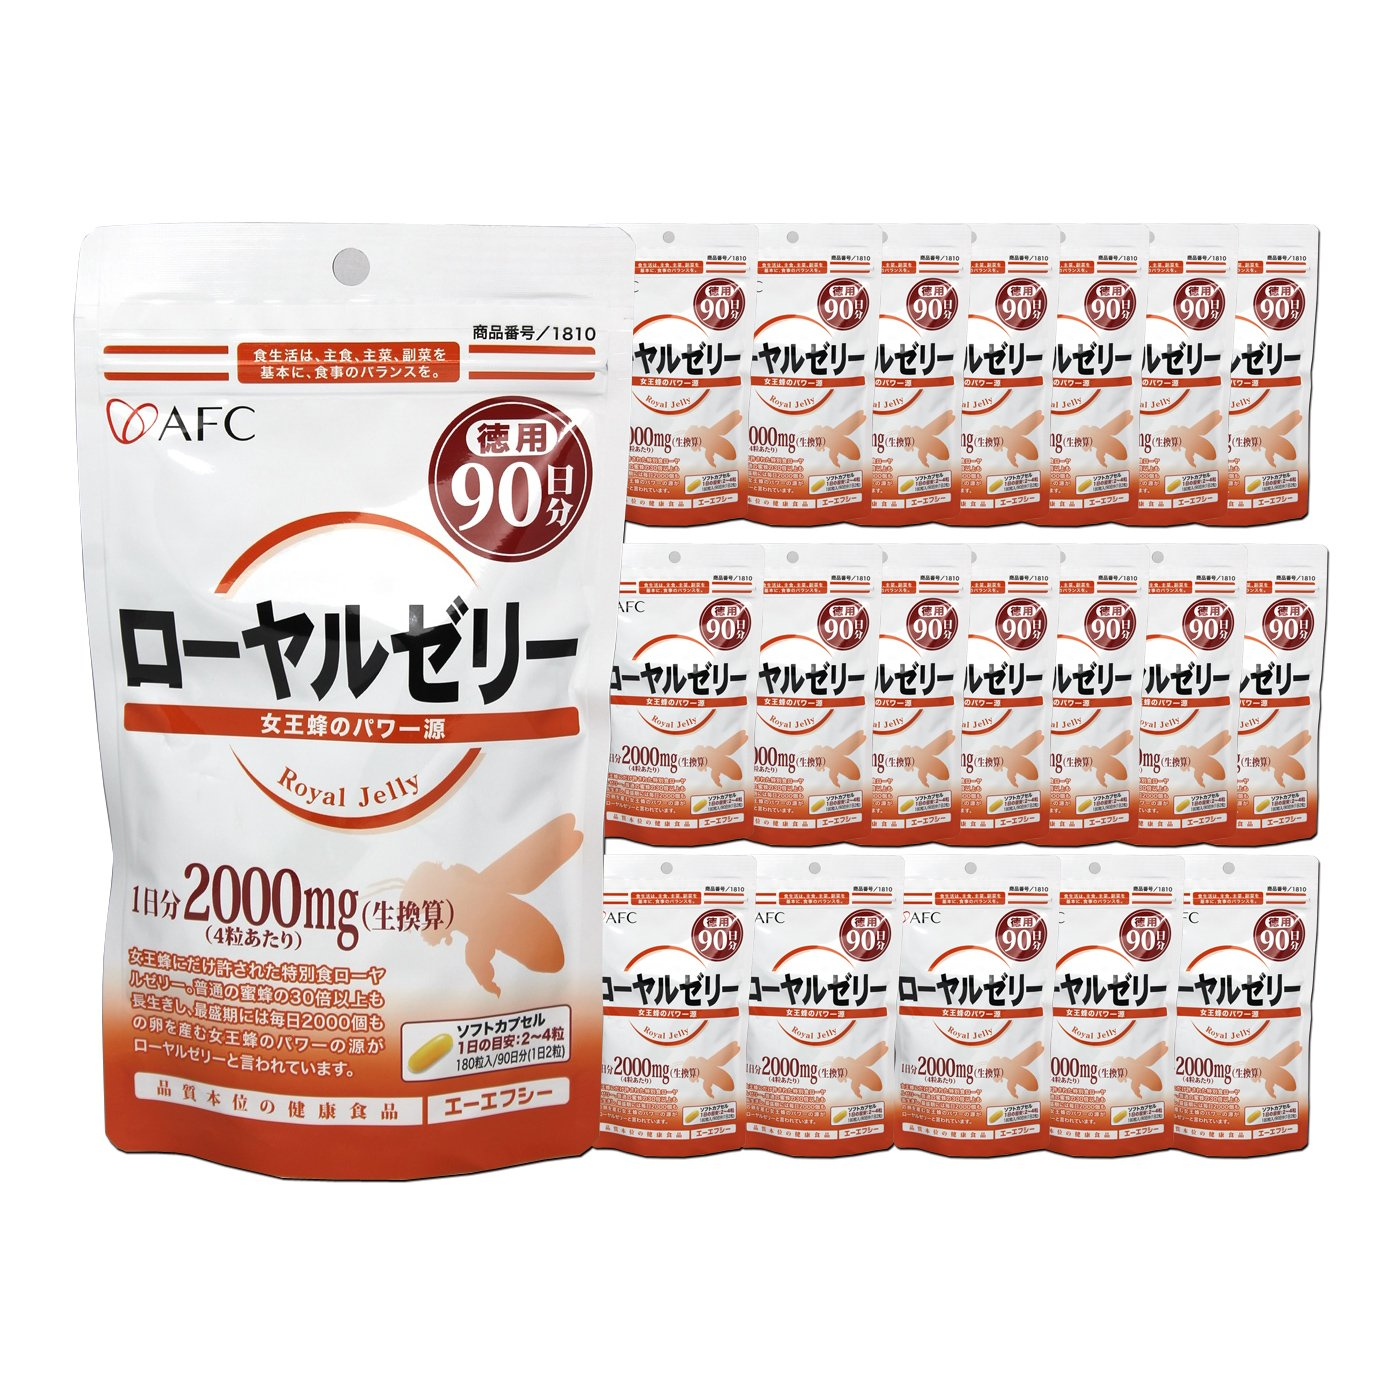 AFC Royal Jelly for 5 years (90 days series * 20 sets)